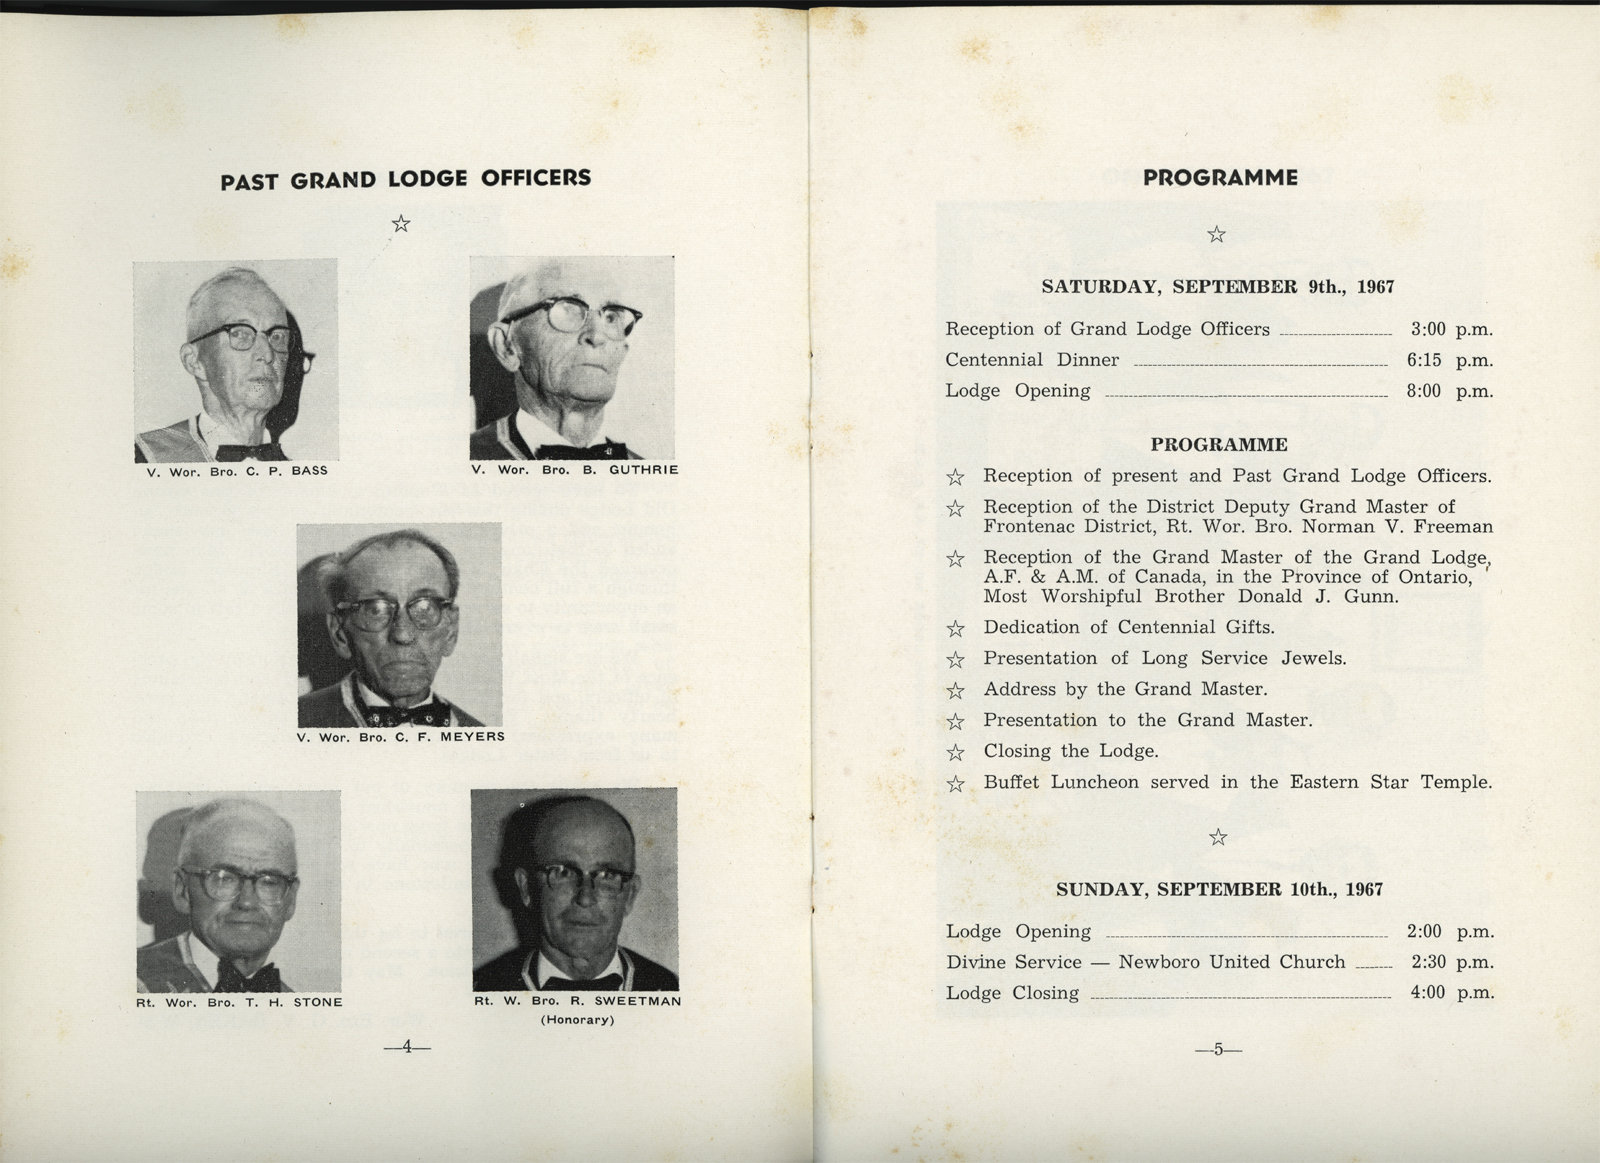 Simpson Masonic Lodge Booklet: Page 4 and 5